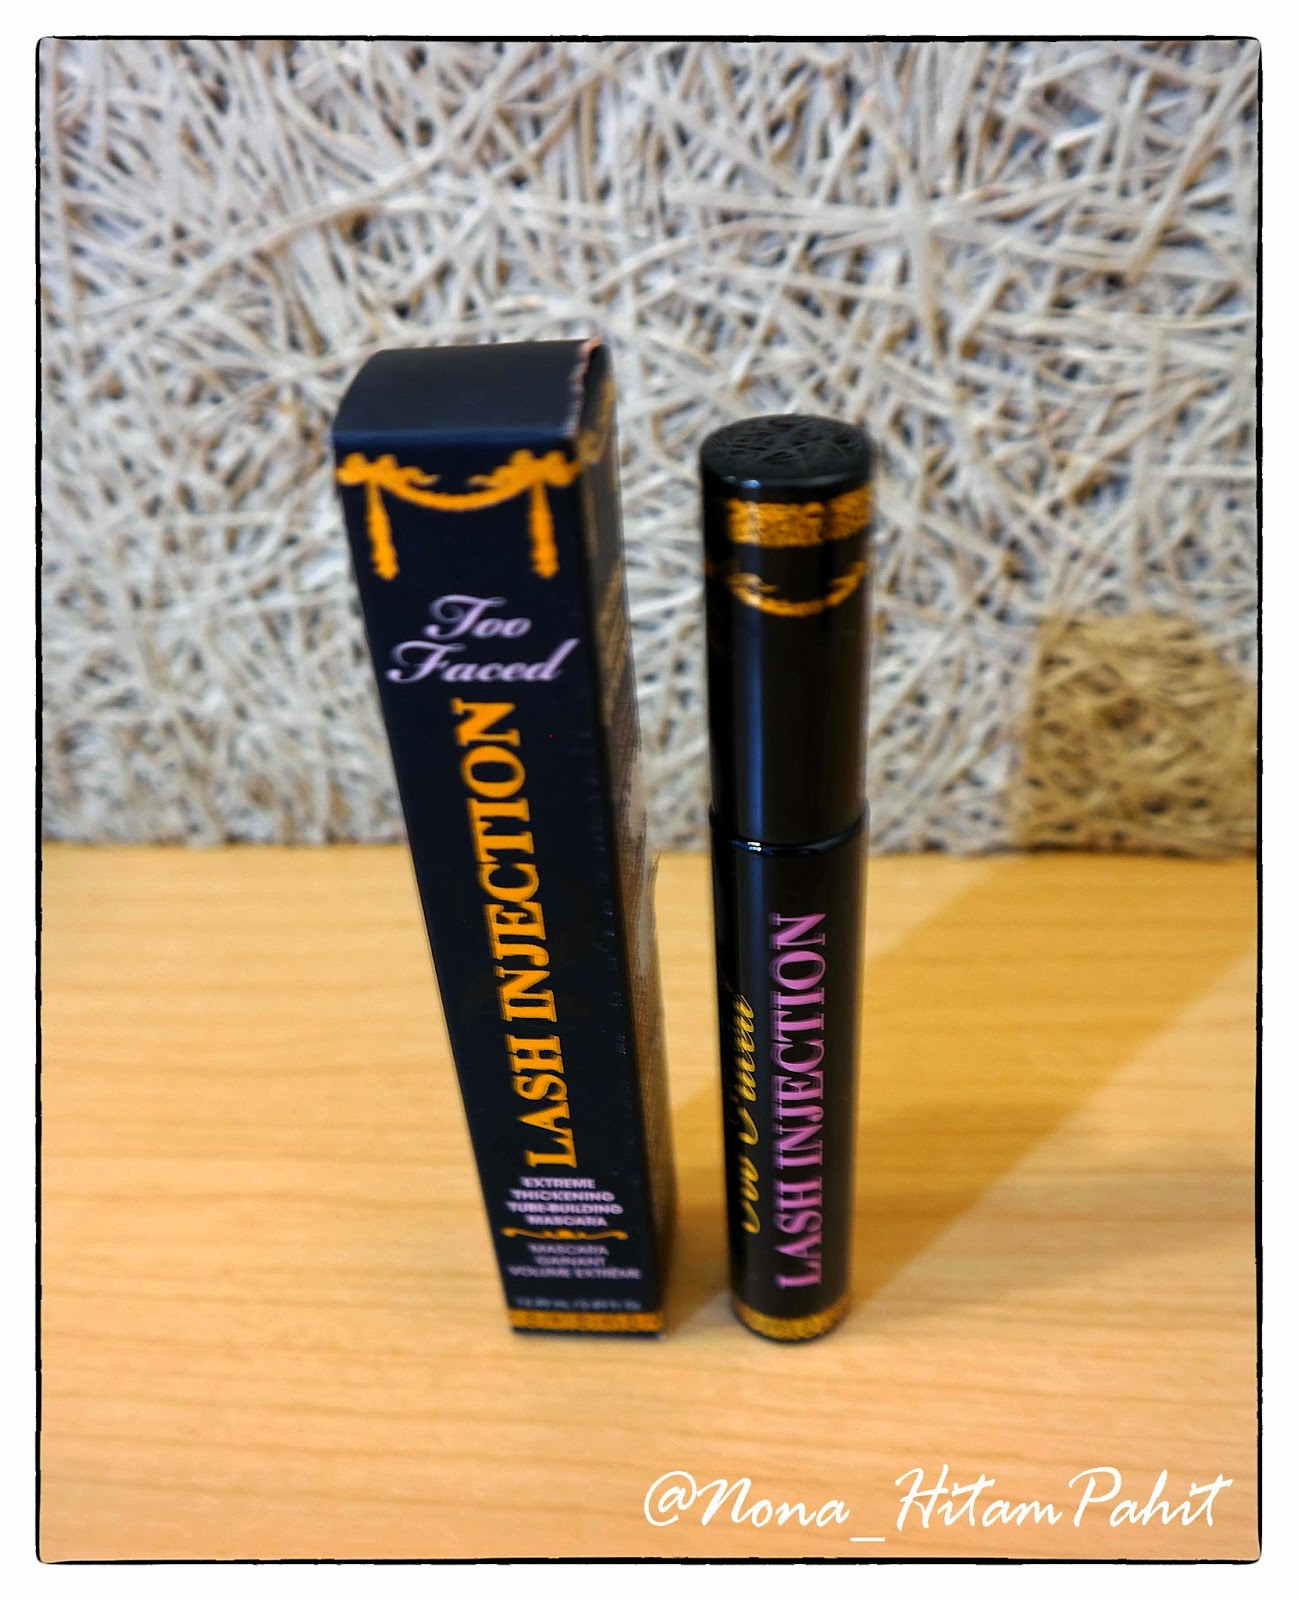 Too Faced Lash Injection Extreme Volume Mascara